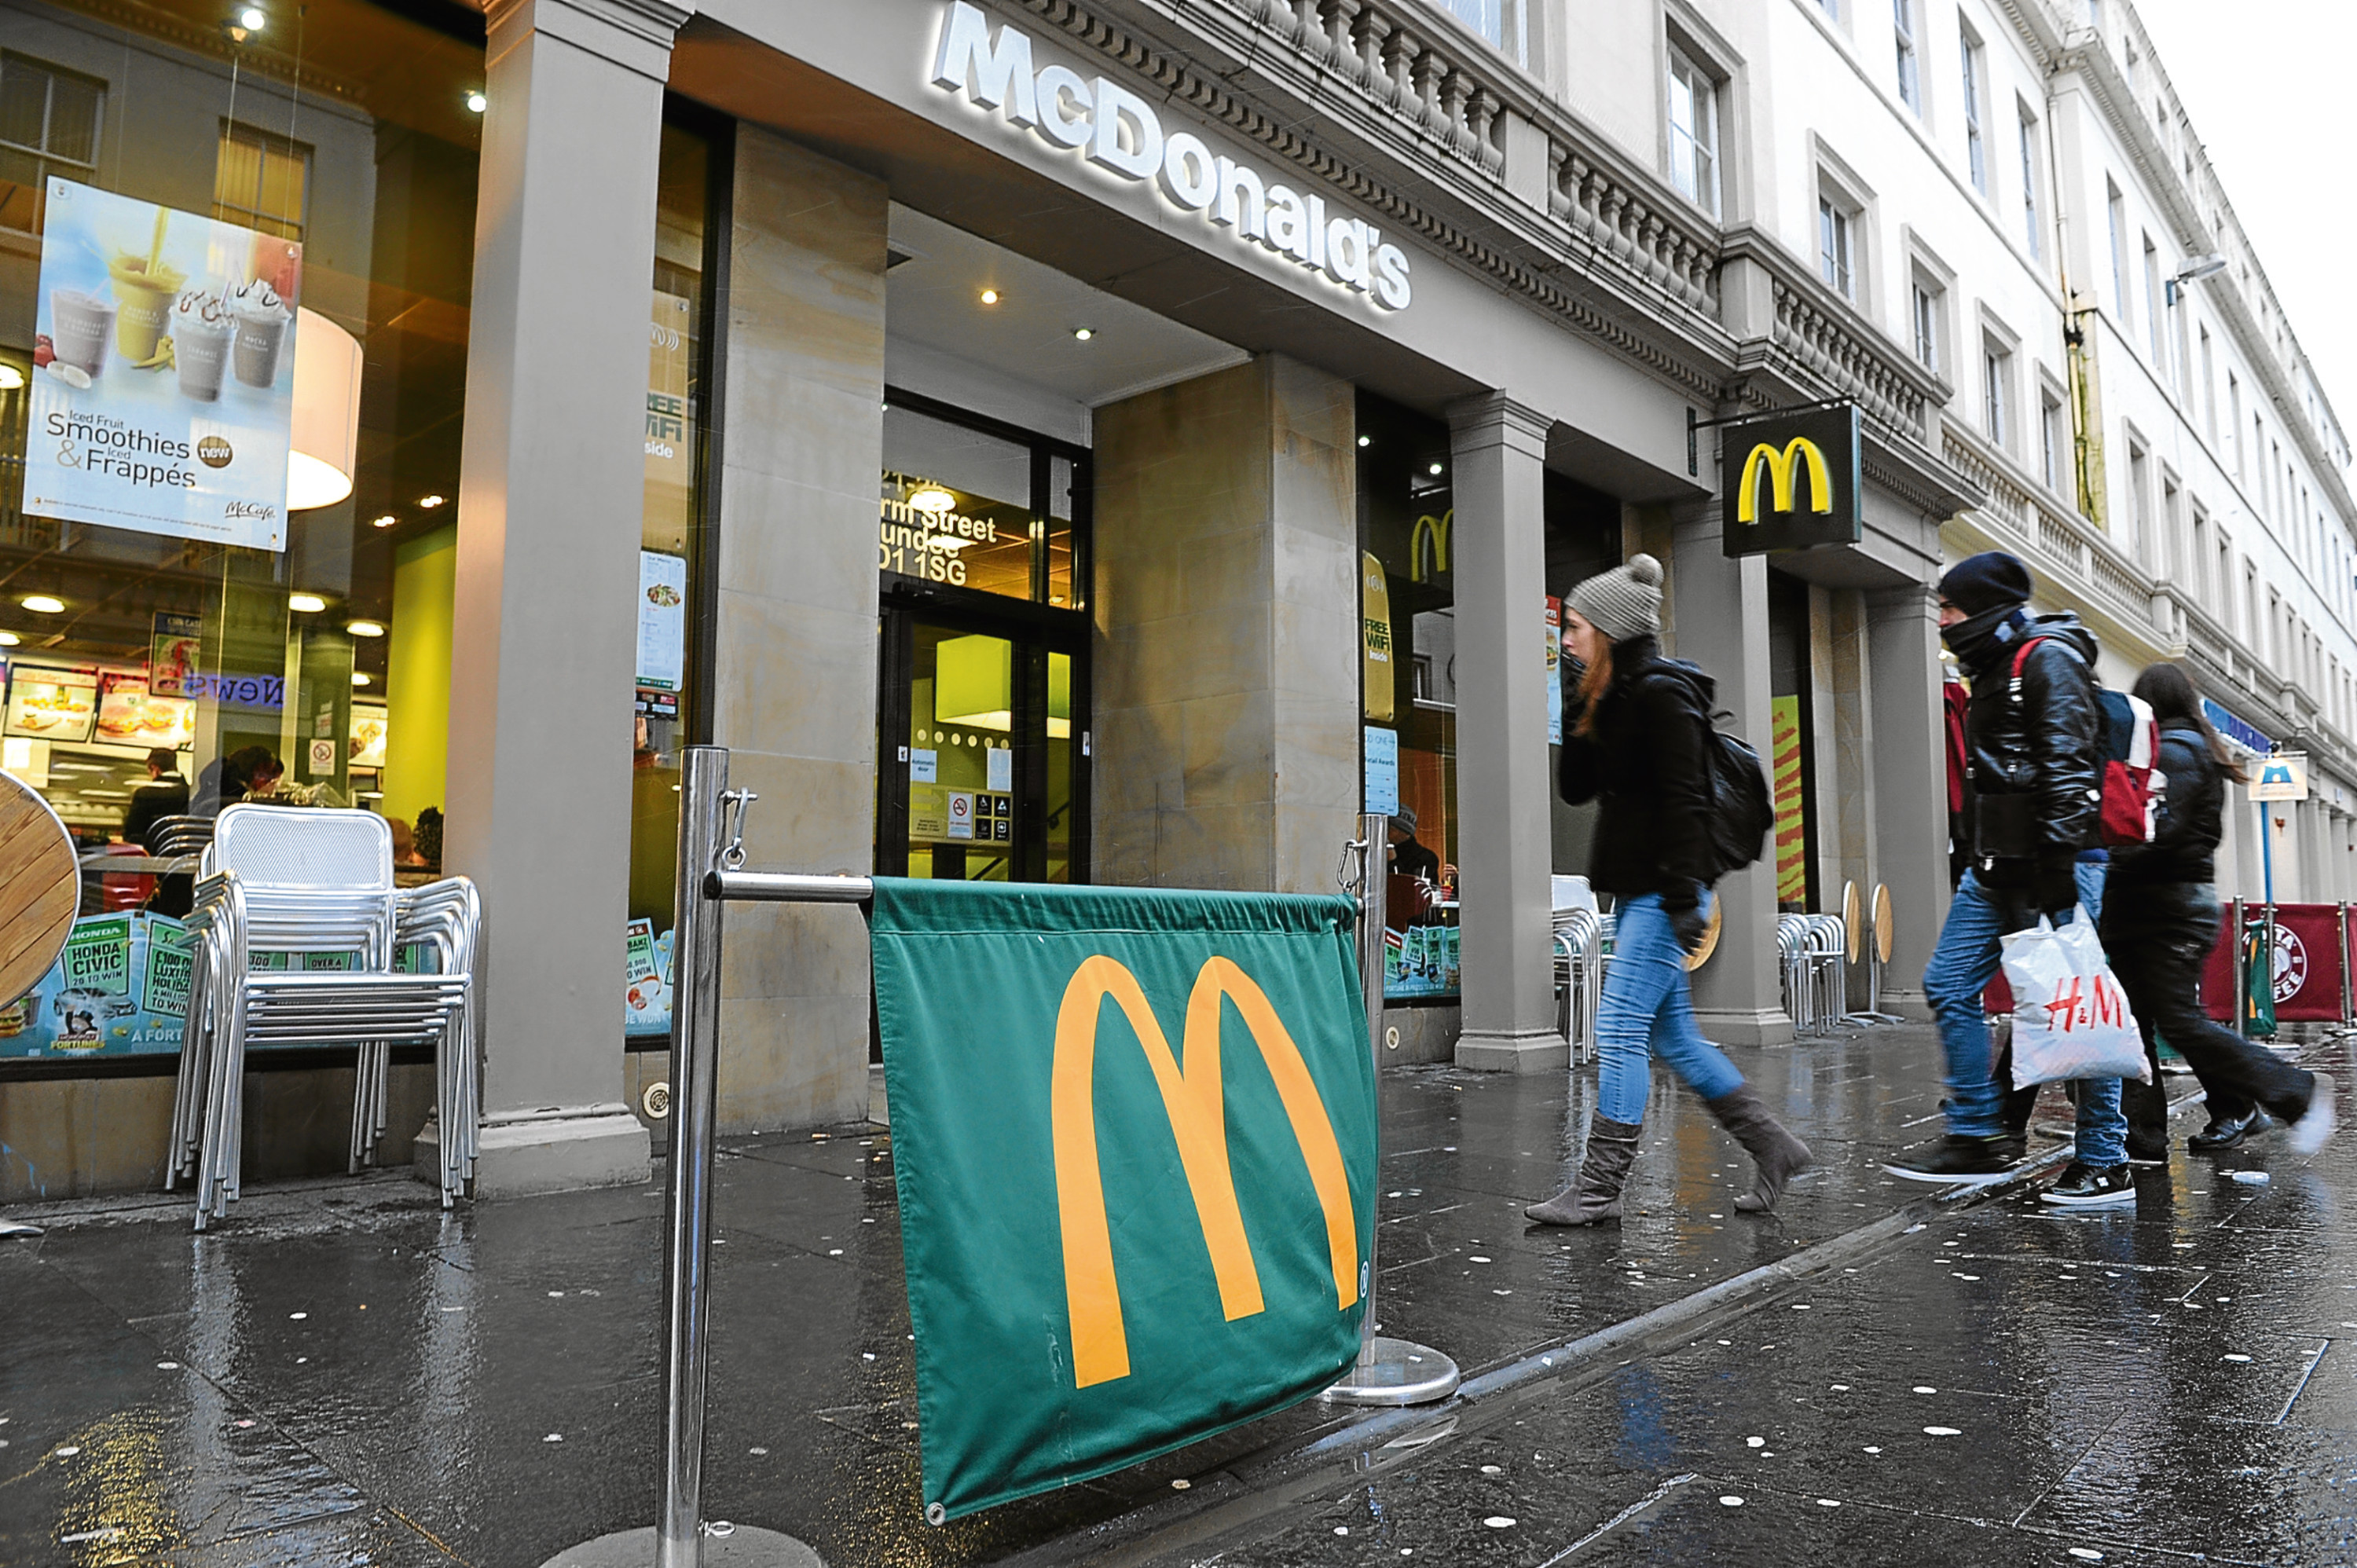 McDonald's in Reform Street (stock image)